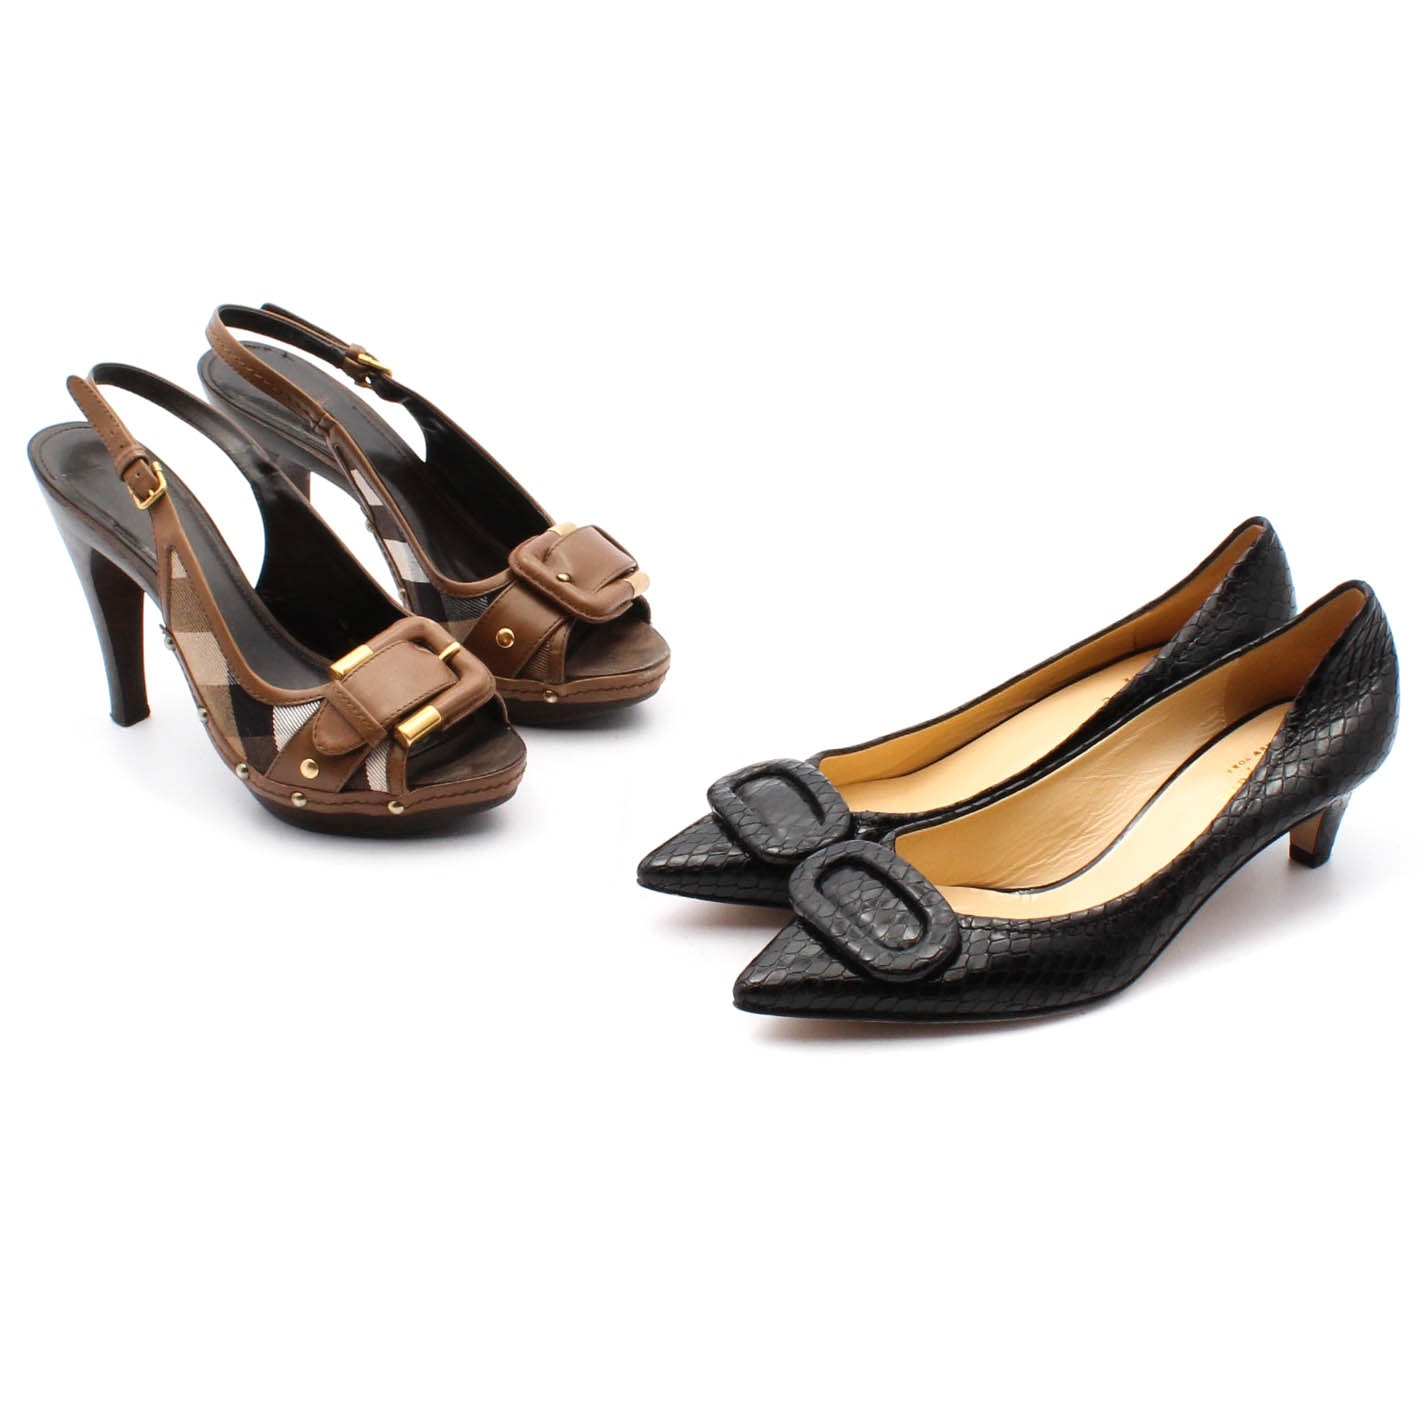 Burberry Canvas and Leather Slingbacks and Kate Spade New York Leather Pumps